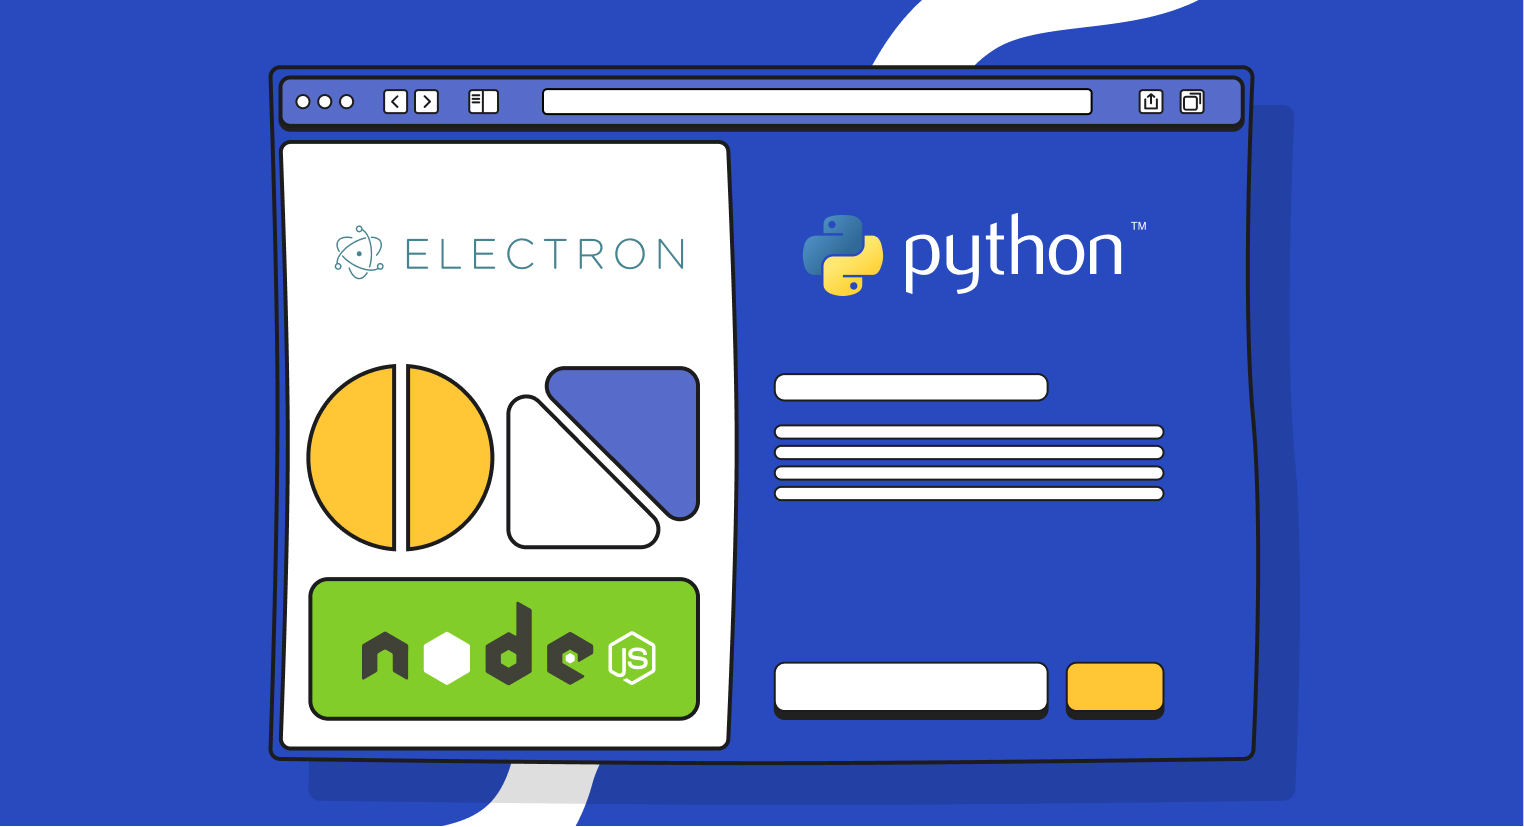 How to Execute Python Scripts in Electron and NodeJS